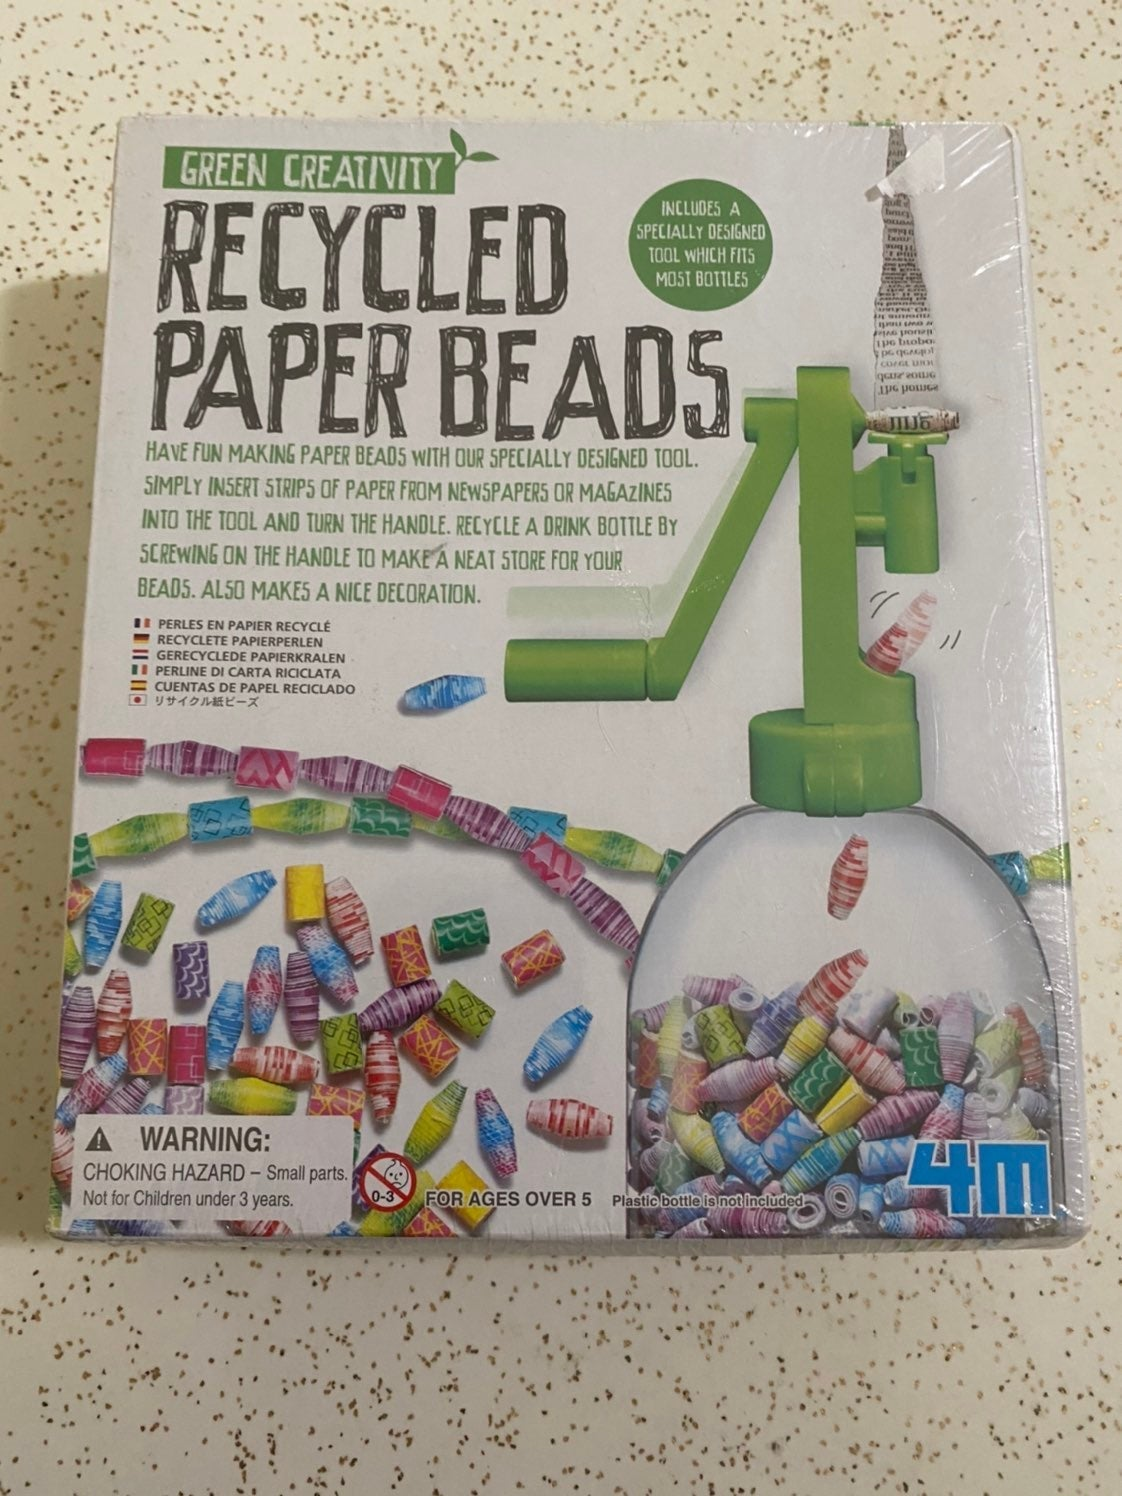 Recycled paper bead craft kit for kids